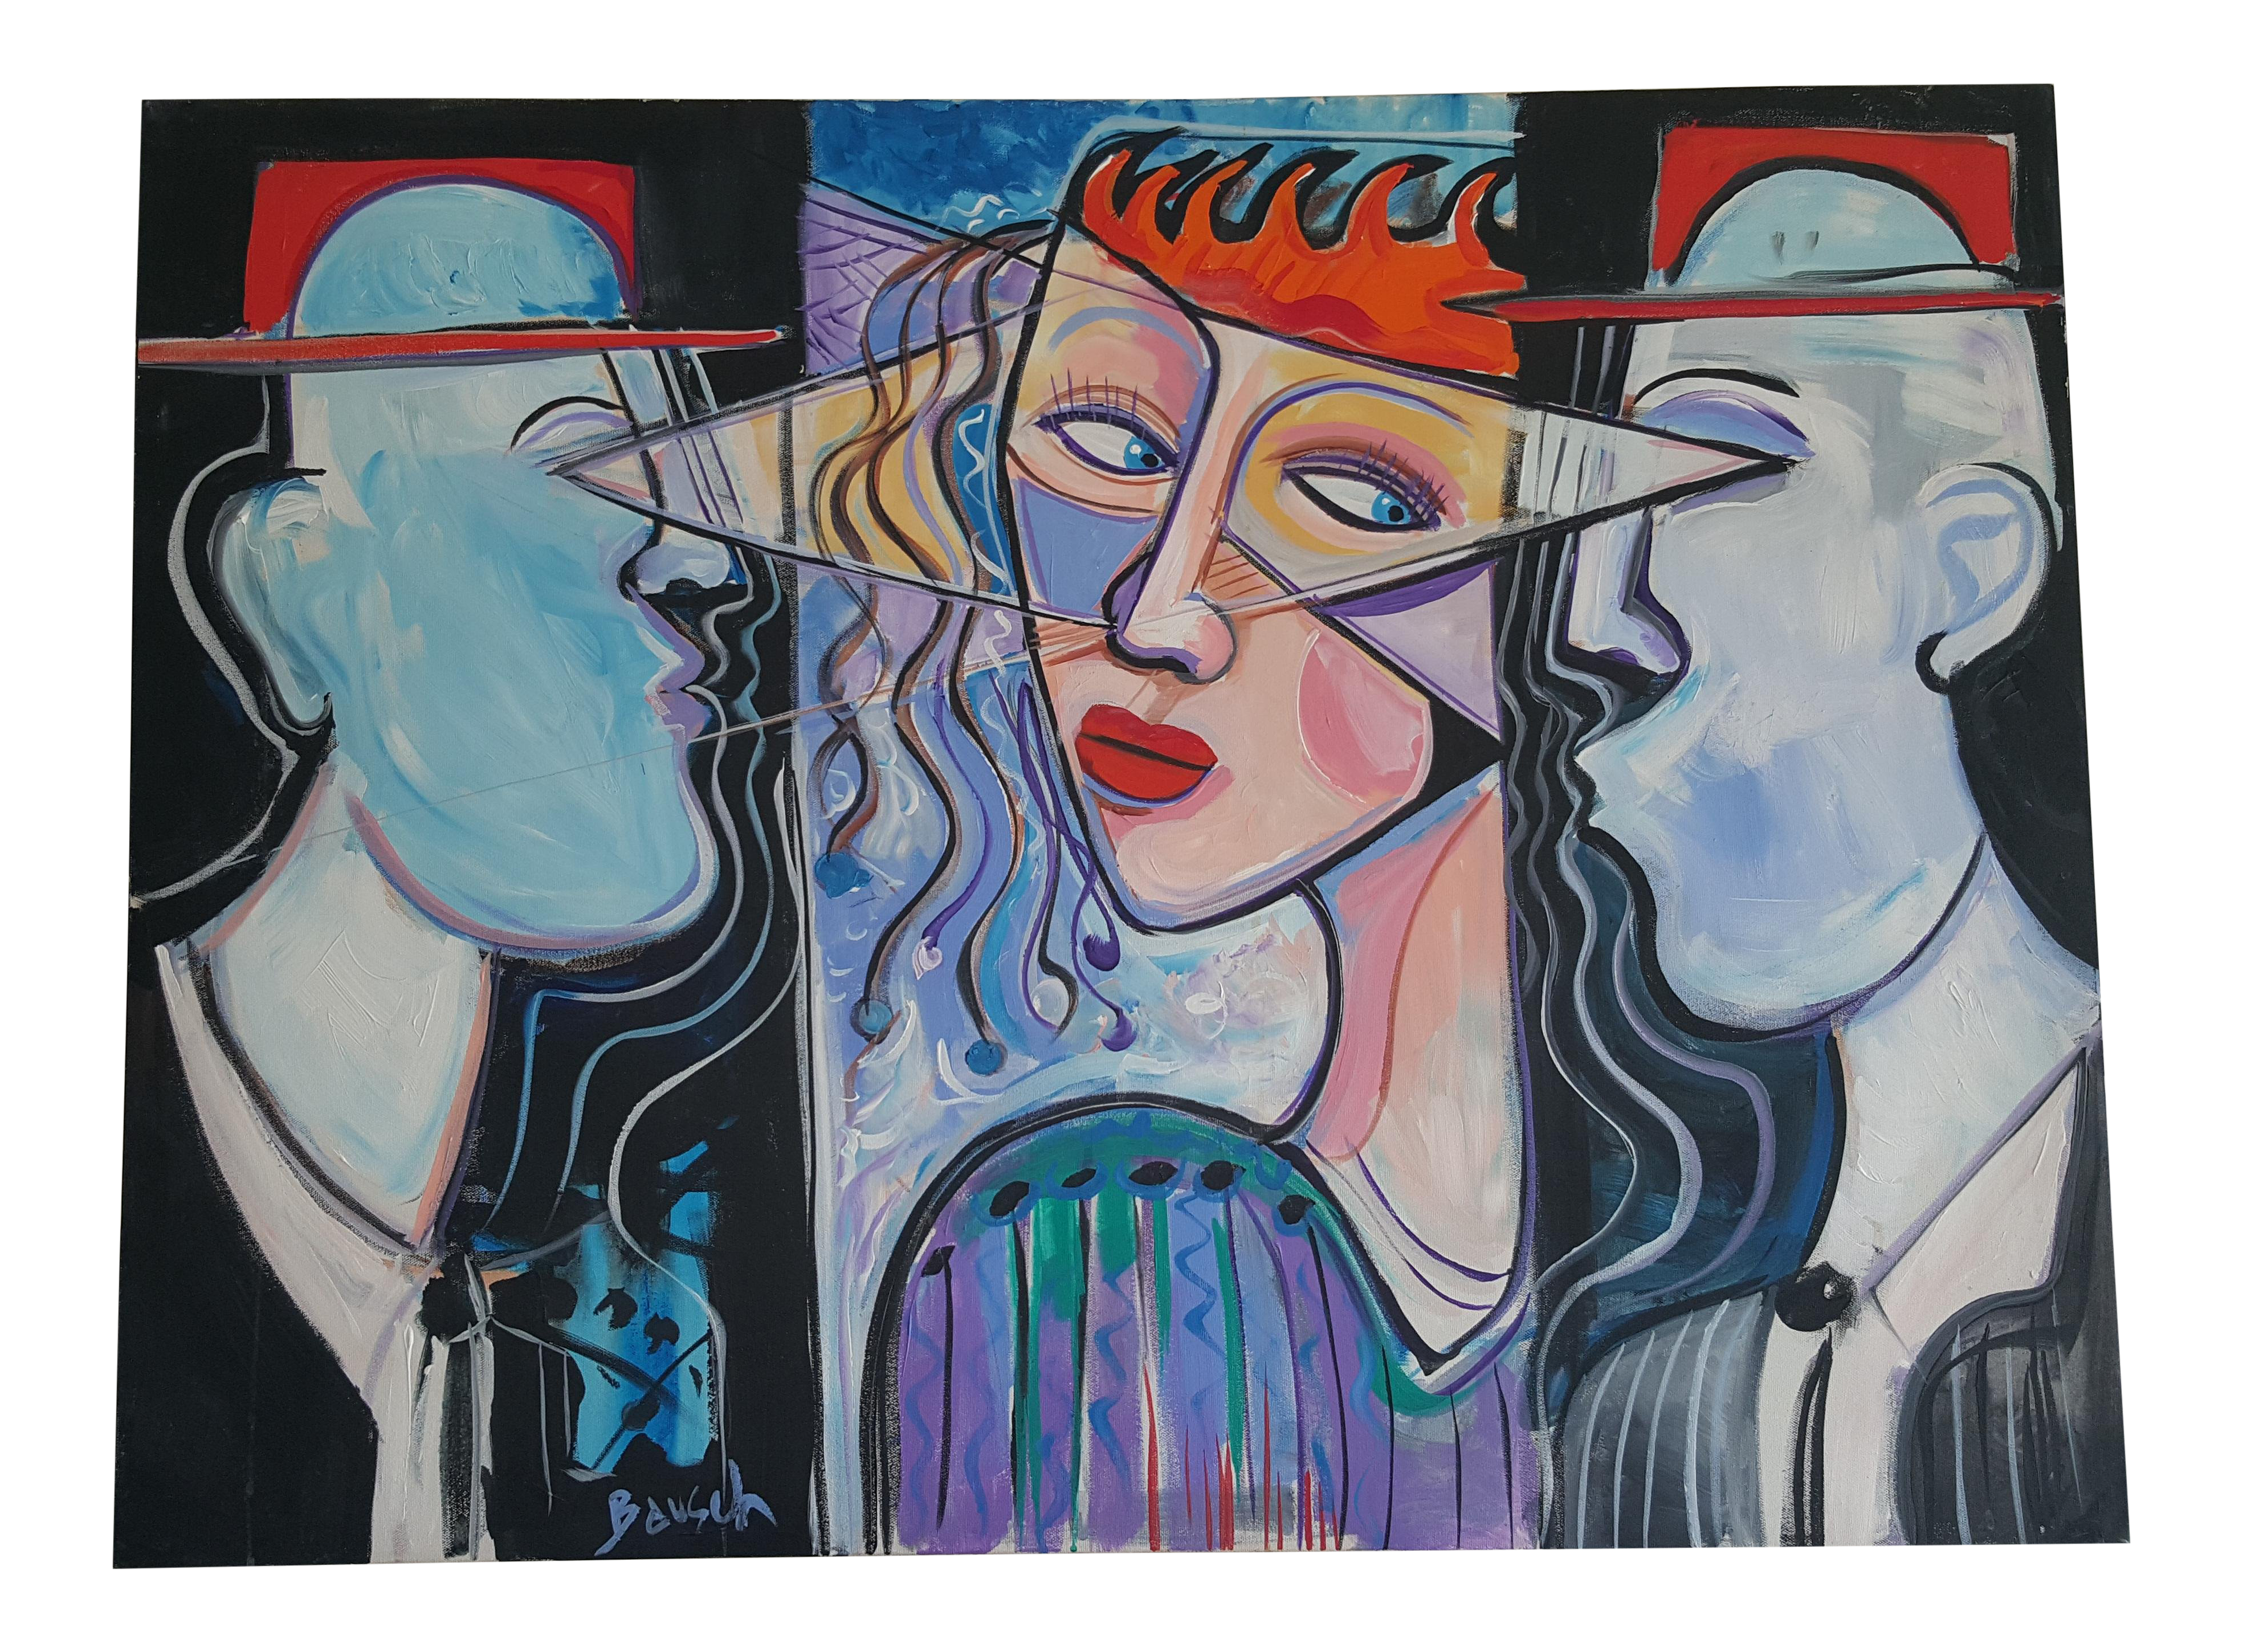 Acrylic drawing street art. Picasso style painting by